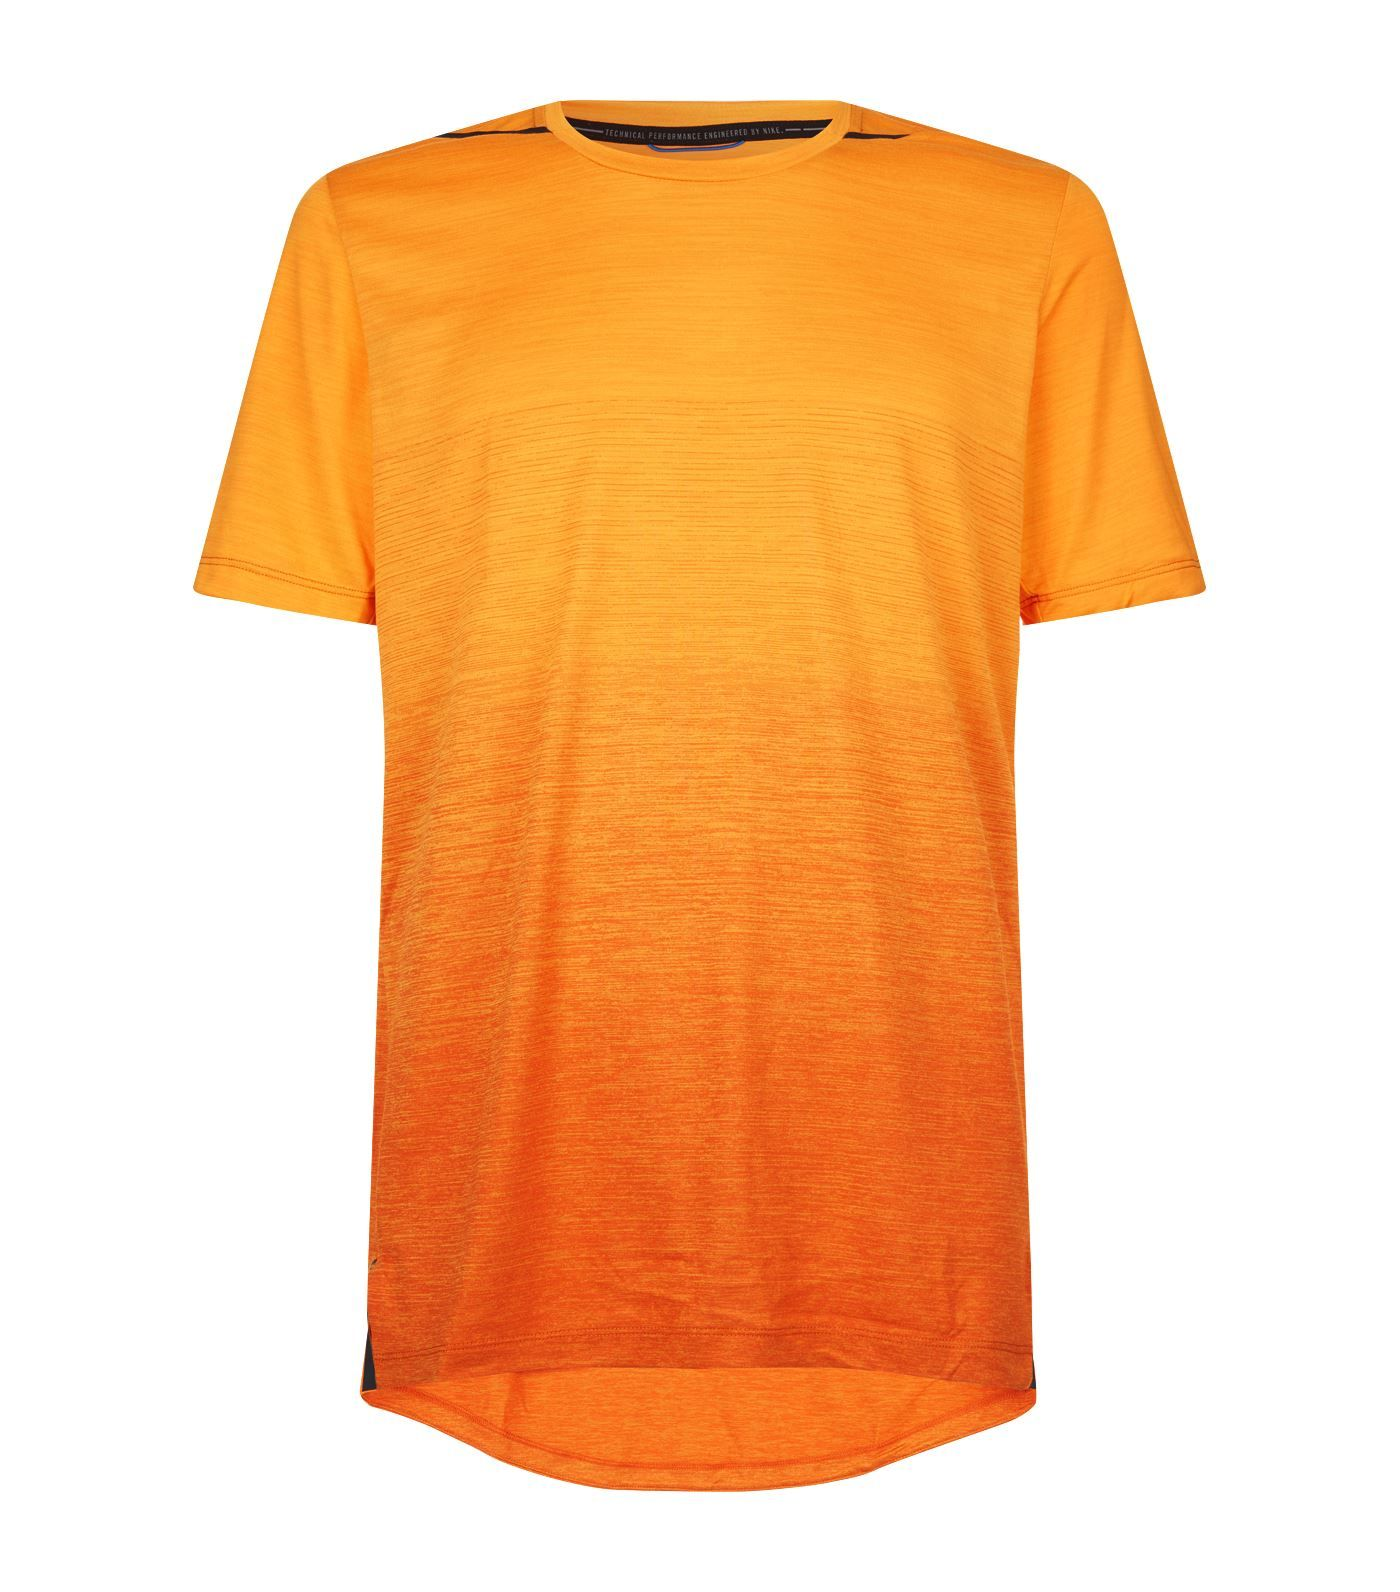 570d79cf NIKE MEN'S DRY GRADIENT TRAINING T-SHIRT. #nike #cloth | Nike ...